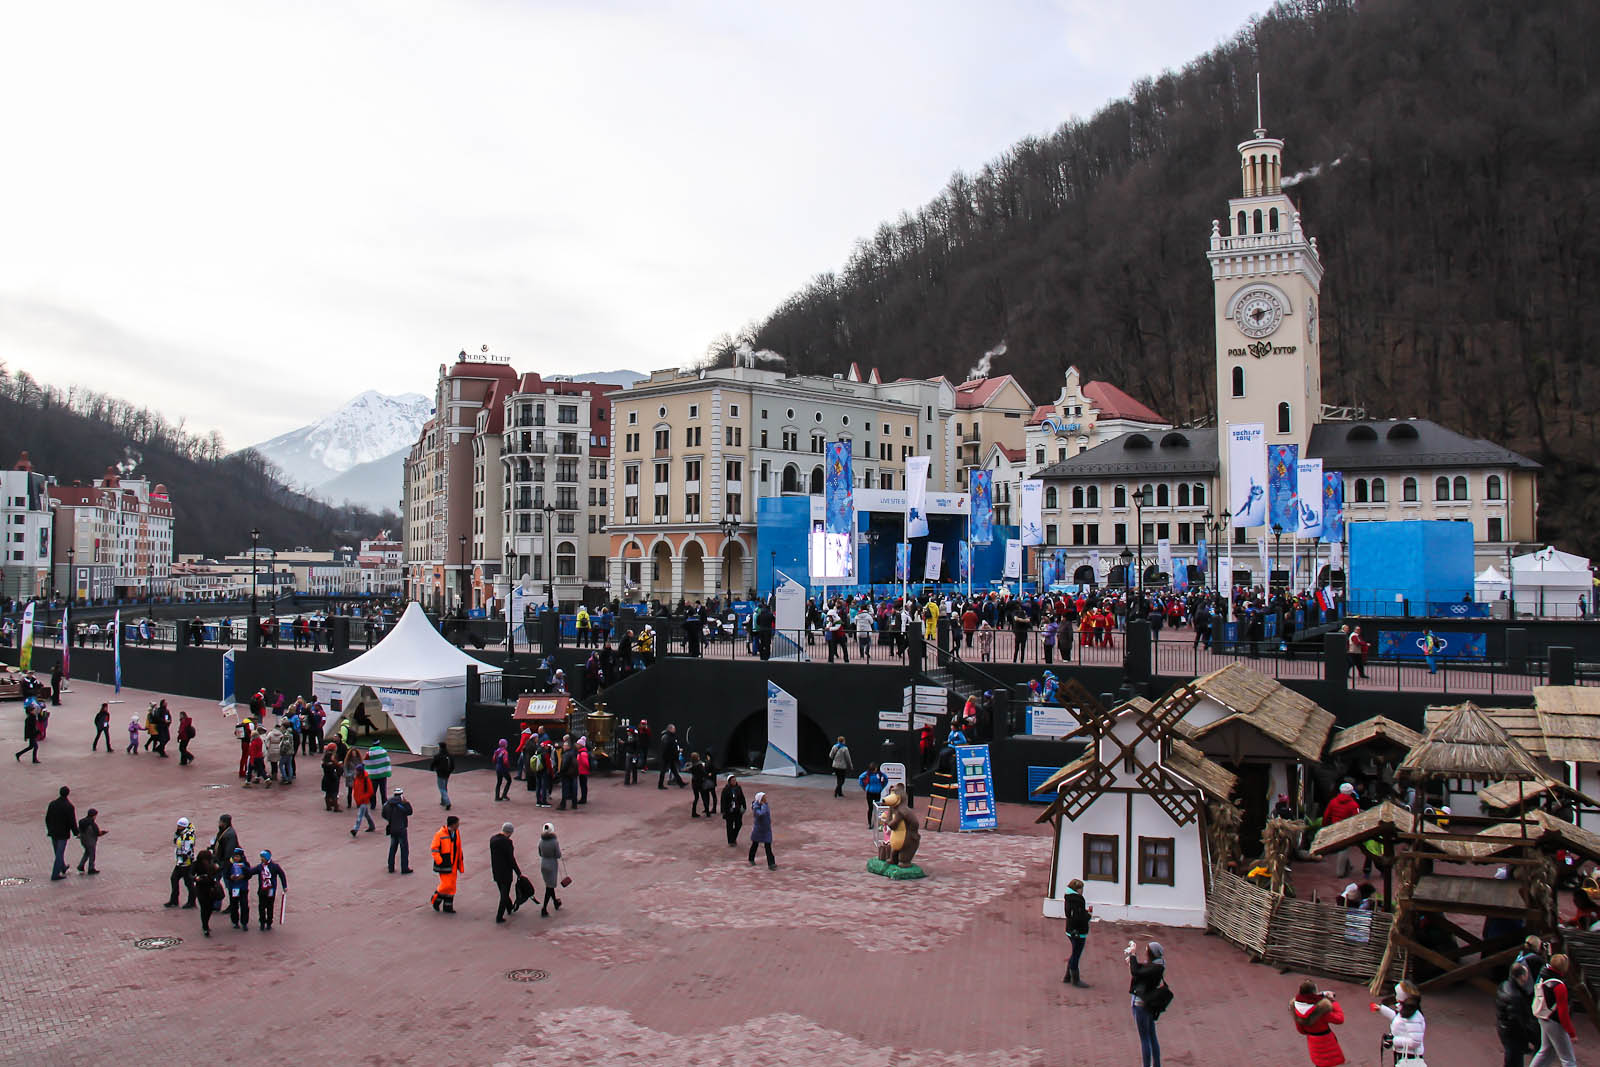 Rosa Khutor skiing resort